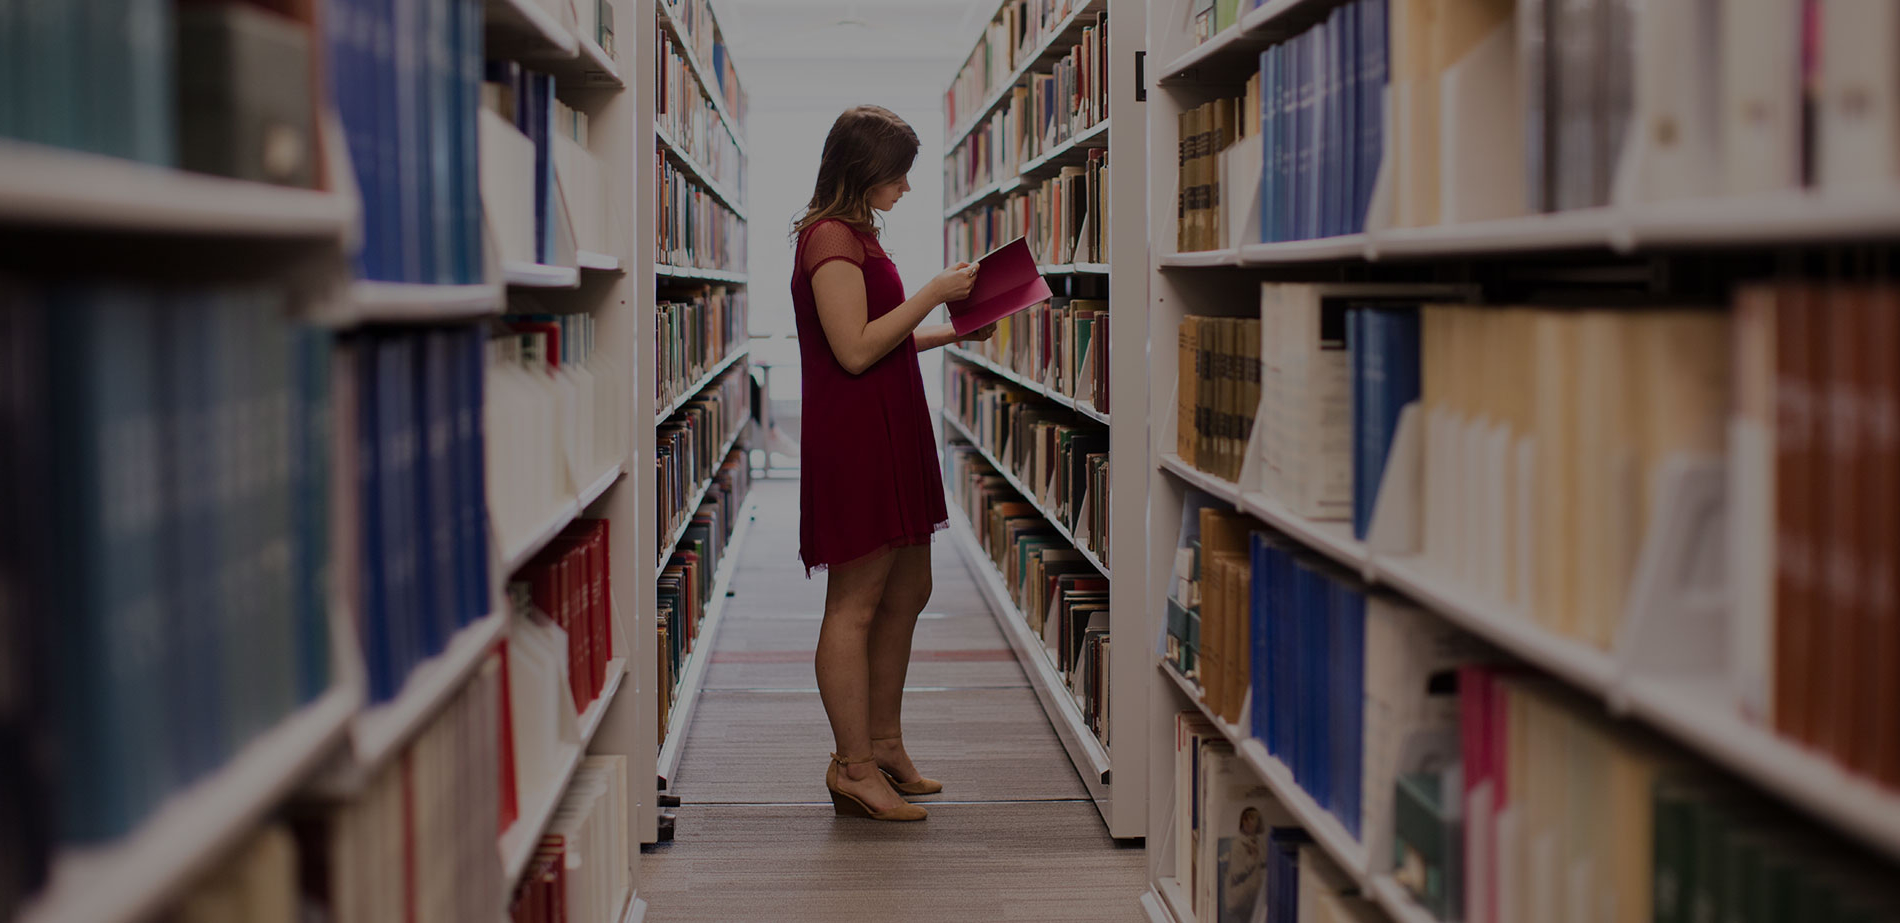 student looking at books in stacks